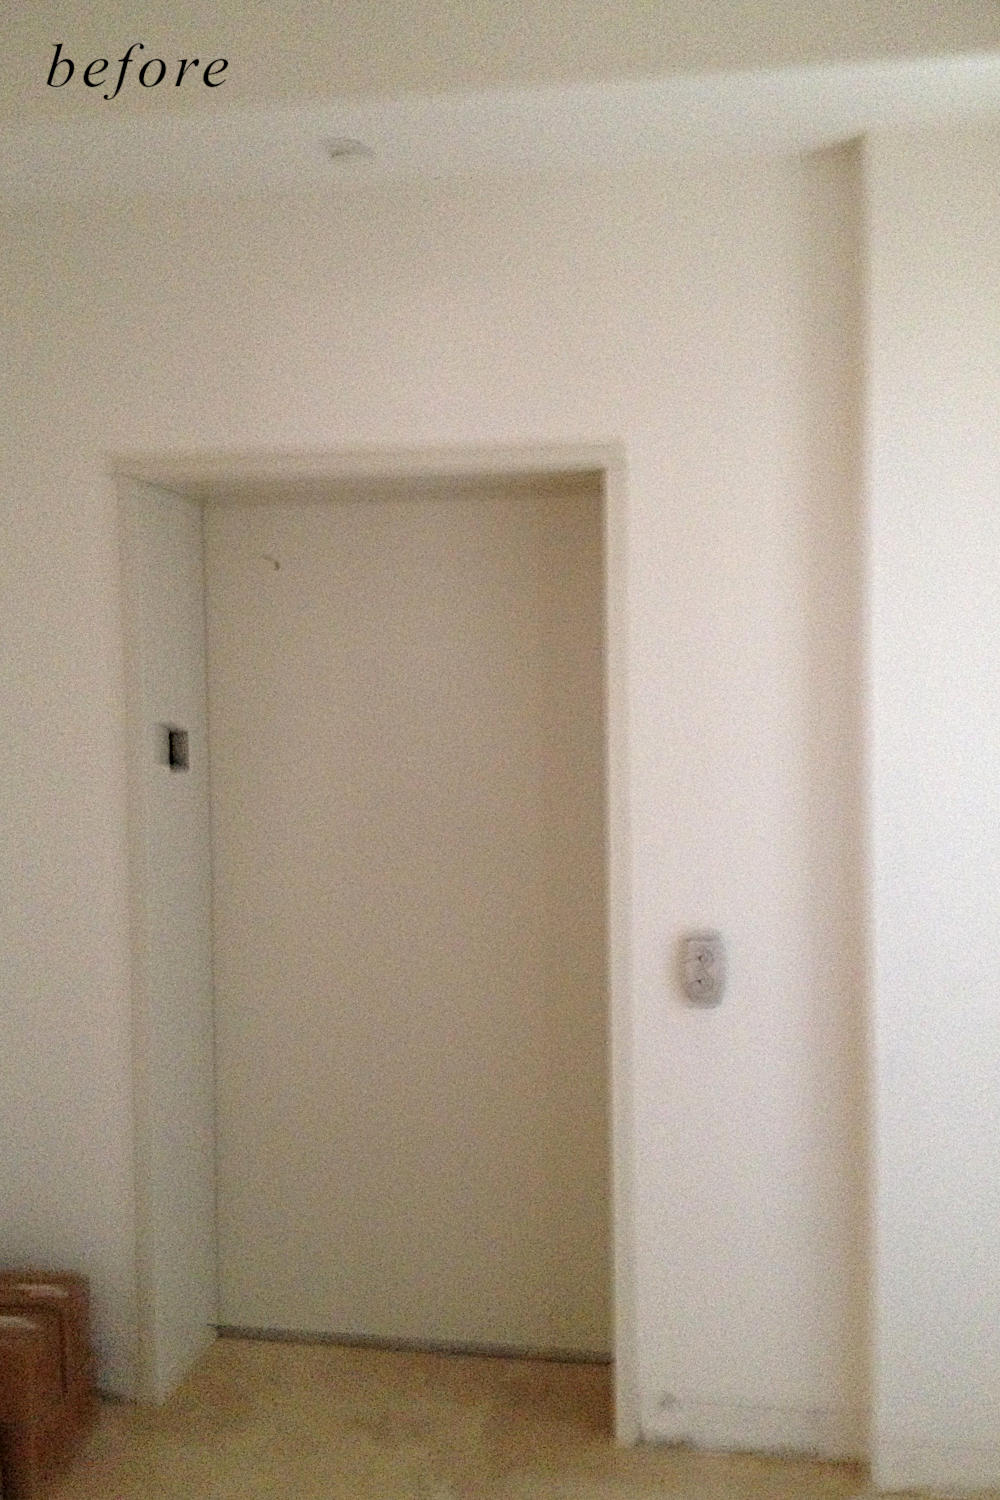 Before remodel  image: dull and basic home elevator doors.